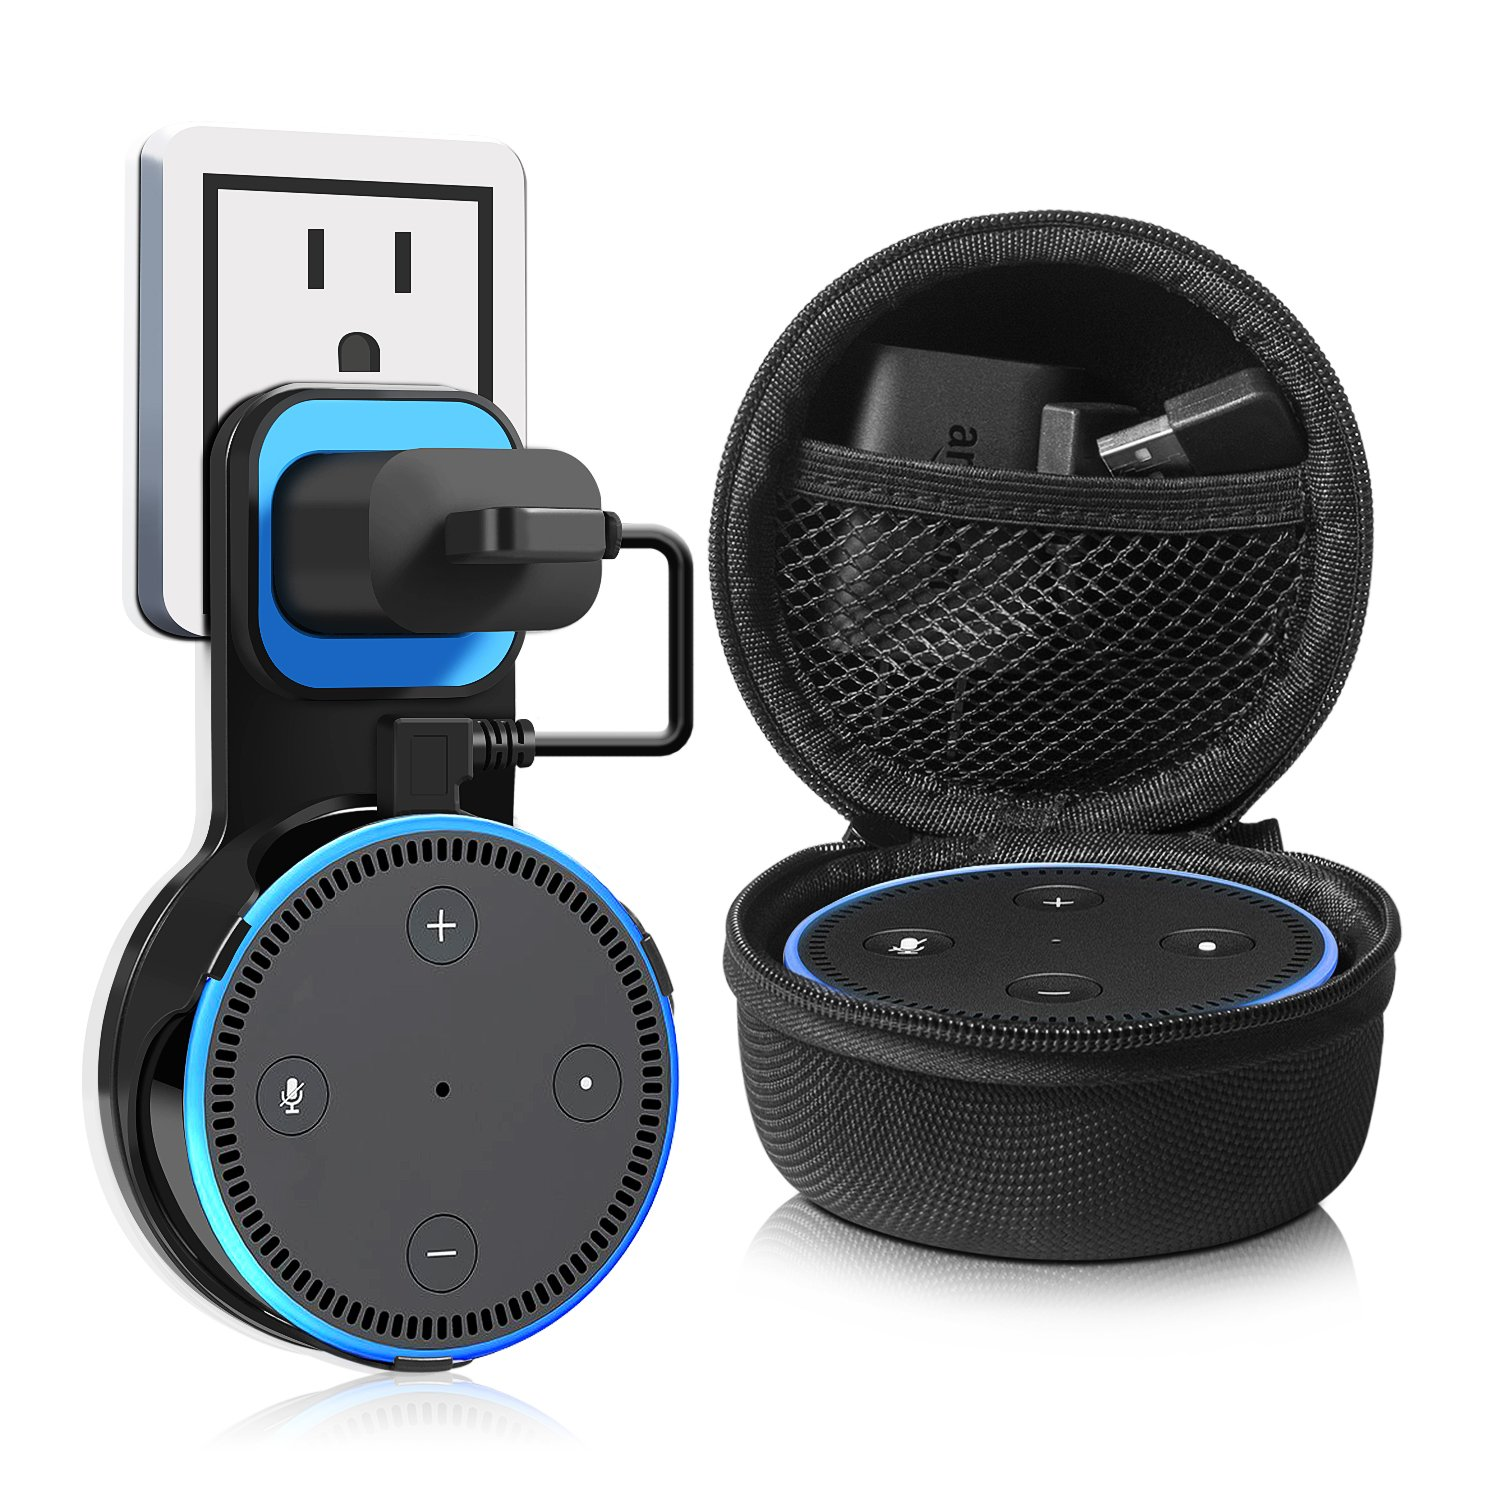 Kupton Wall Mount for Echo Dot 2, Outlet Wall Mount Hanger Holder Stand Clip & Protective Carrying Storage Case Accessories for Echo Dot 2nd Generation Without Messy Wires or Screws – Black by Kupton (Image #1)